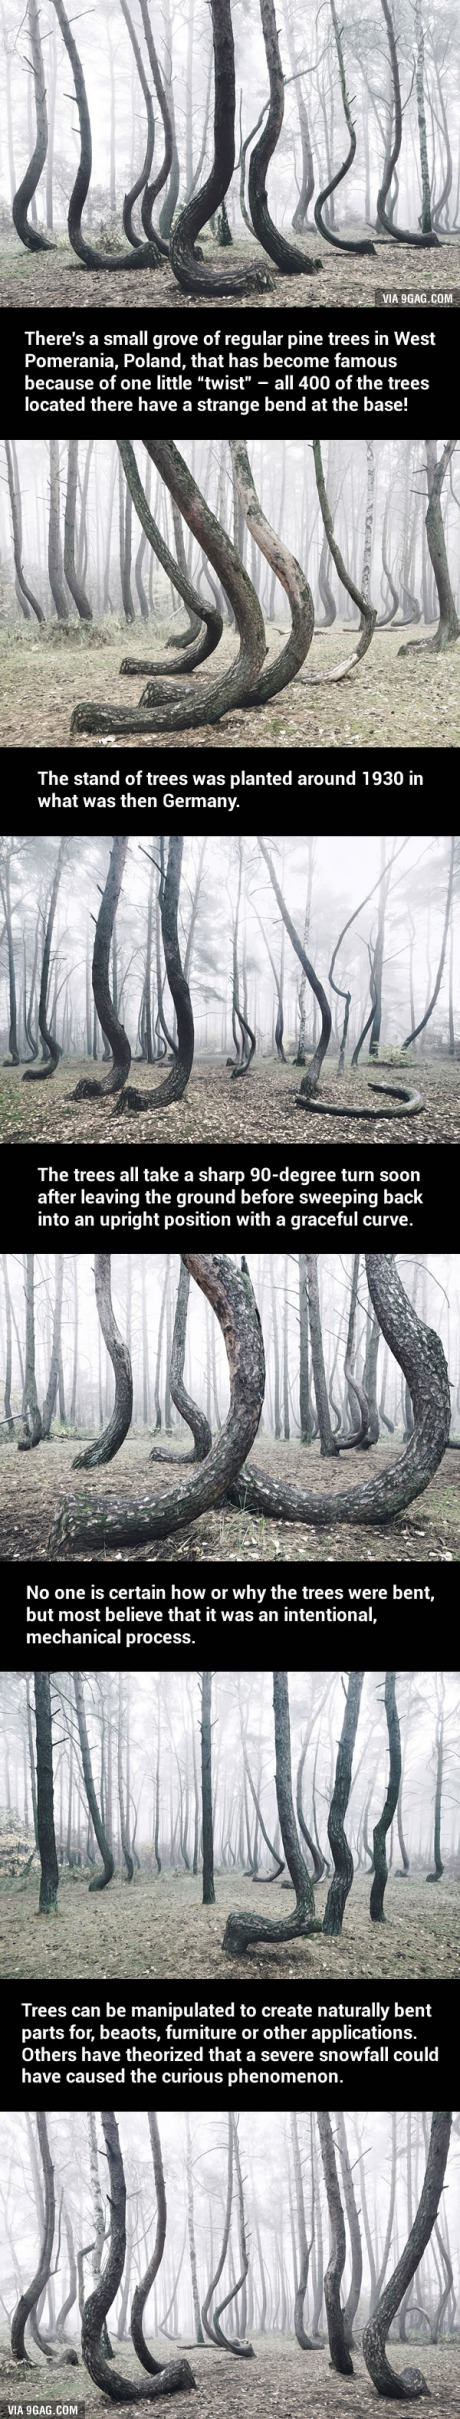 Mysterious Forest Of Crooked Trees In Poland Is Still A - To this day the mystery of polands crooked forest remains unexplained